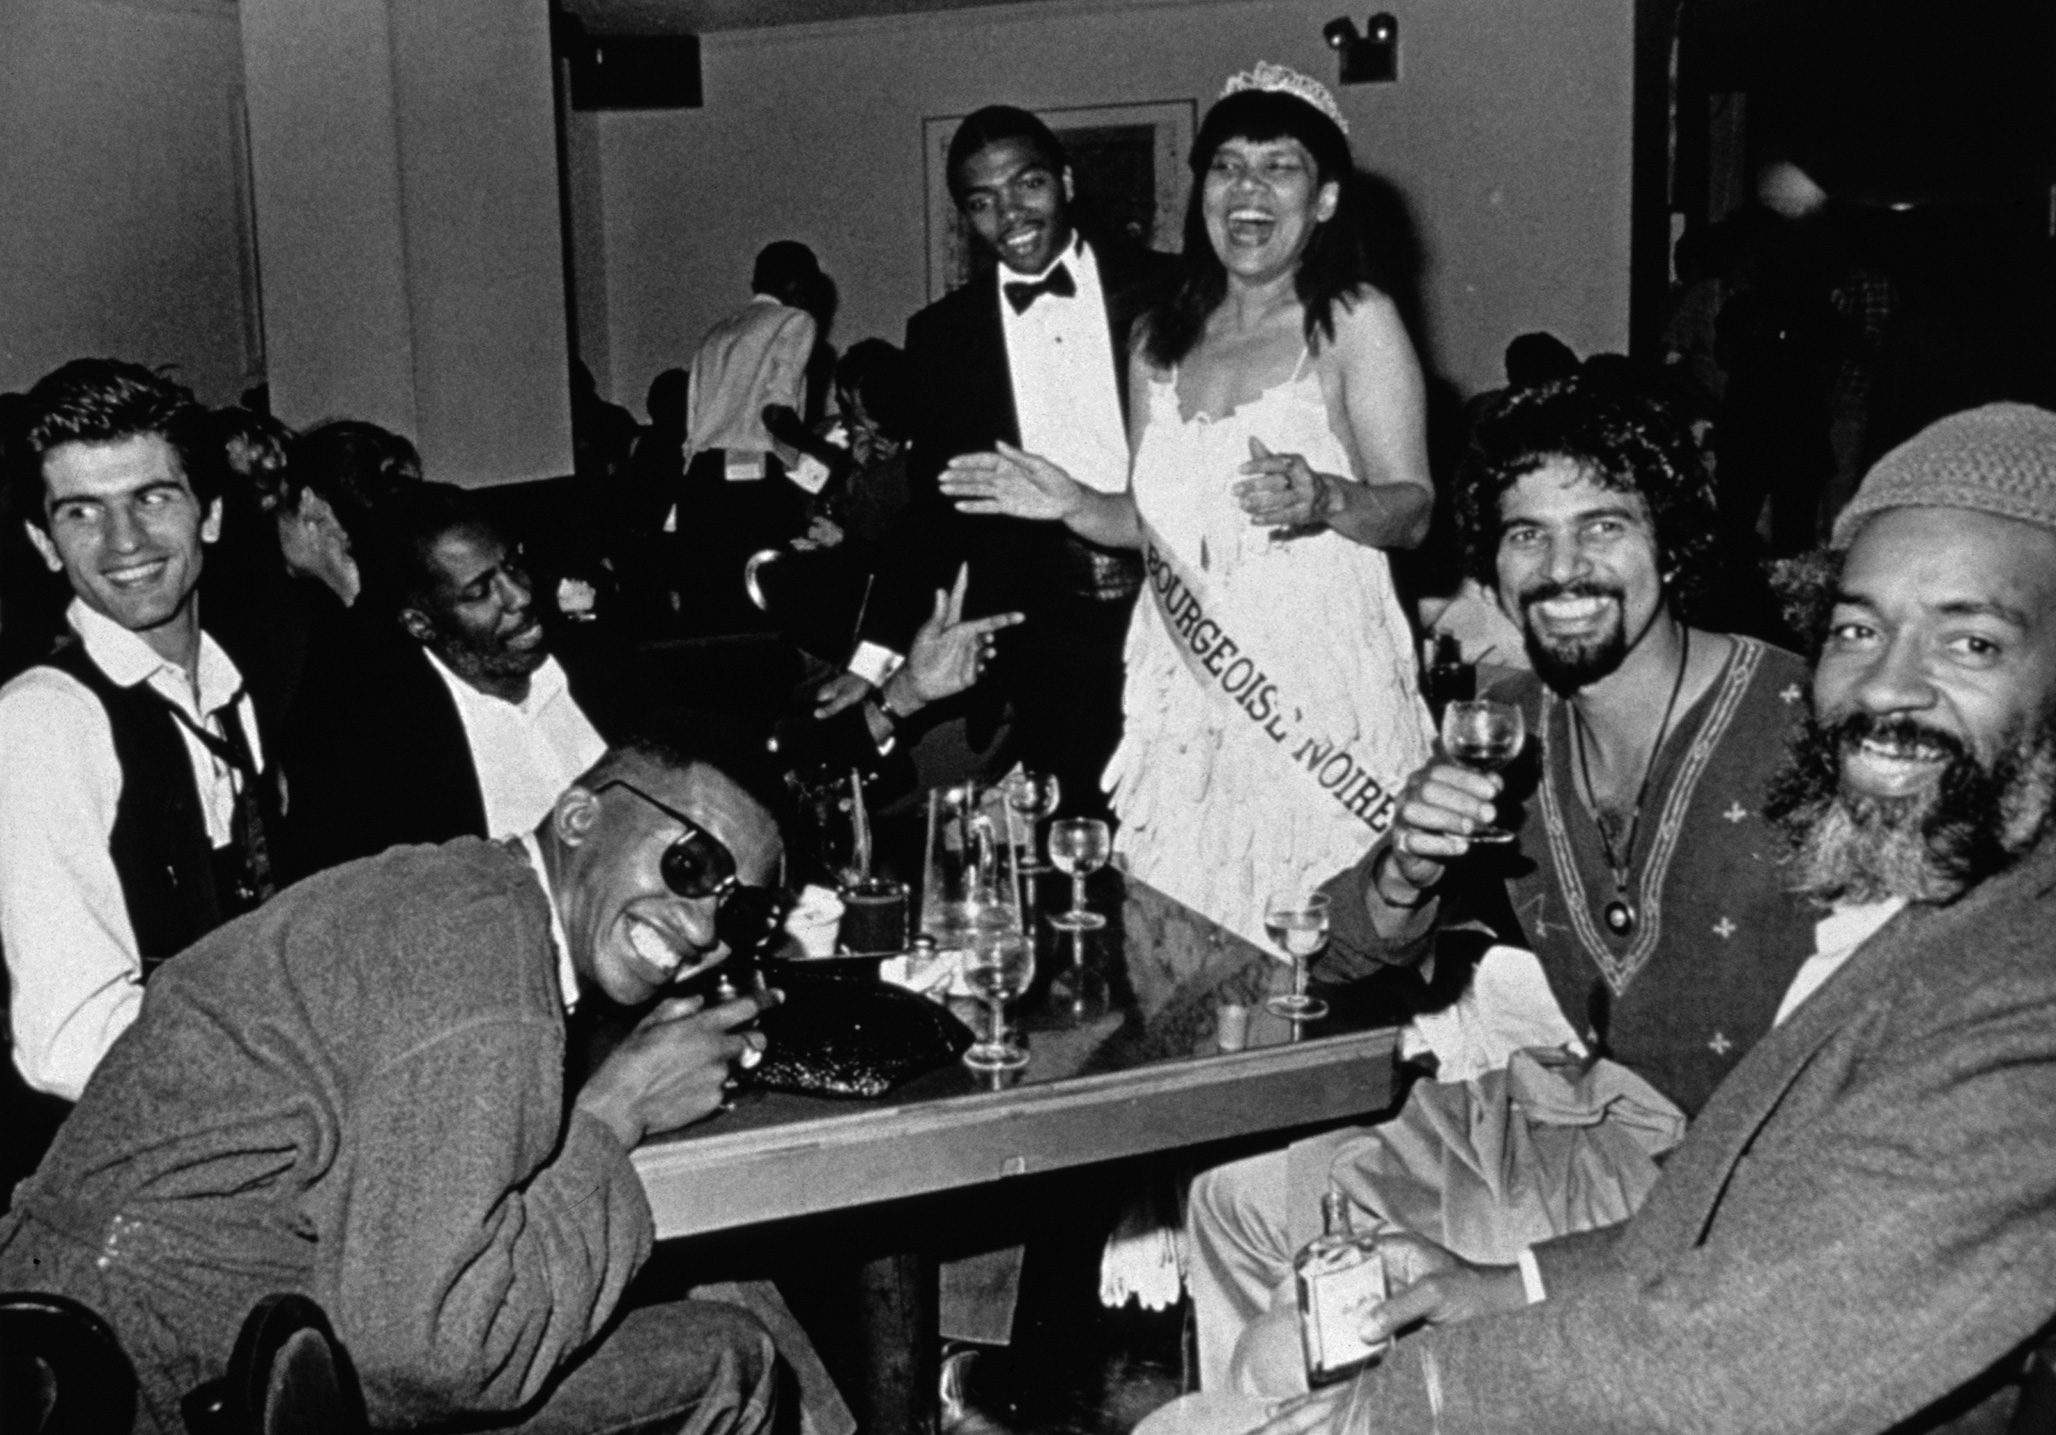 A photo by Lorraine O'Grady, titled Untitled (Mlle Bourgeoise Noire celebrates with her friends), dated 1980-83/2009.